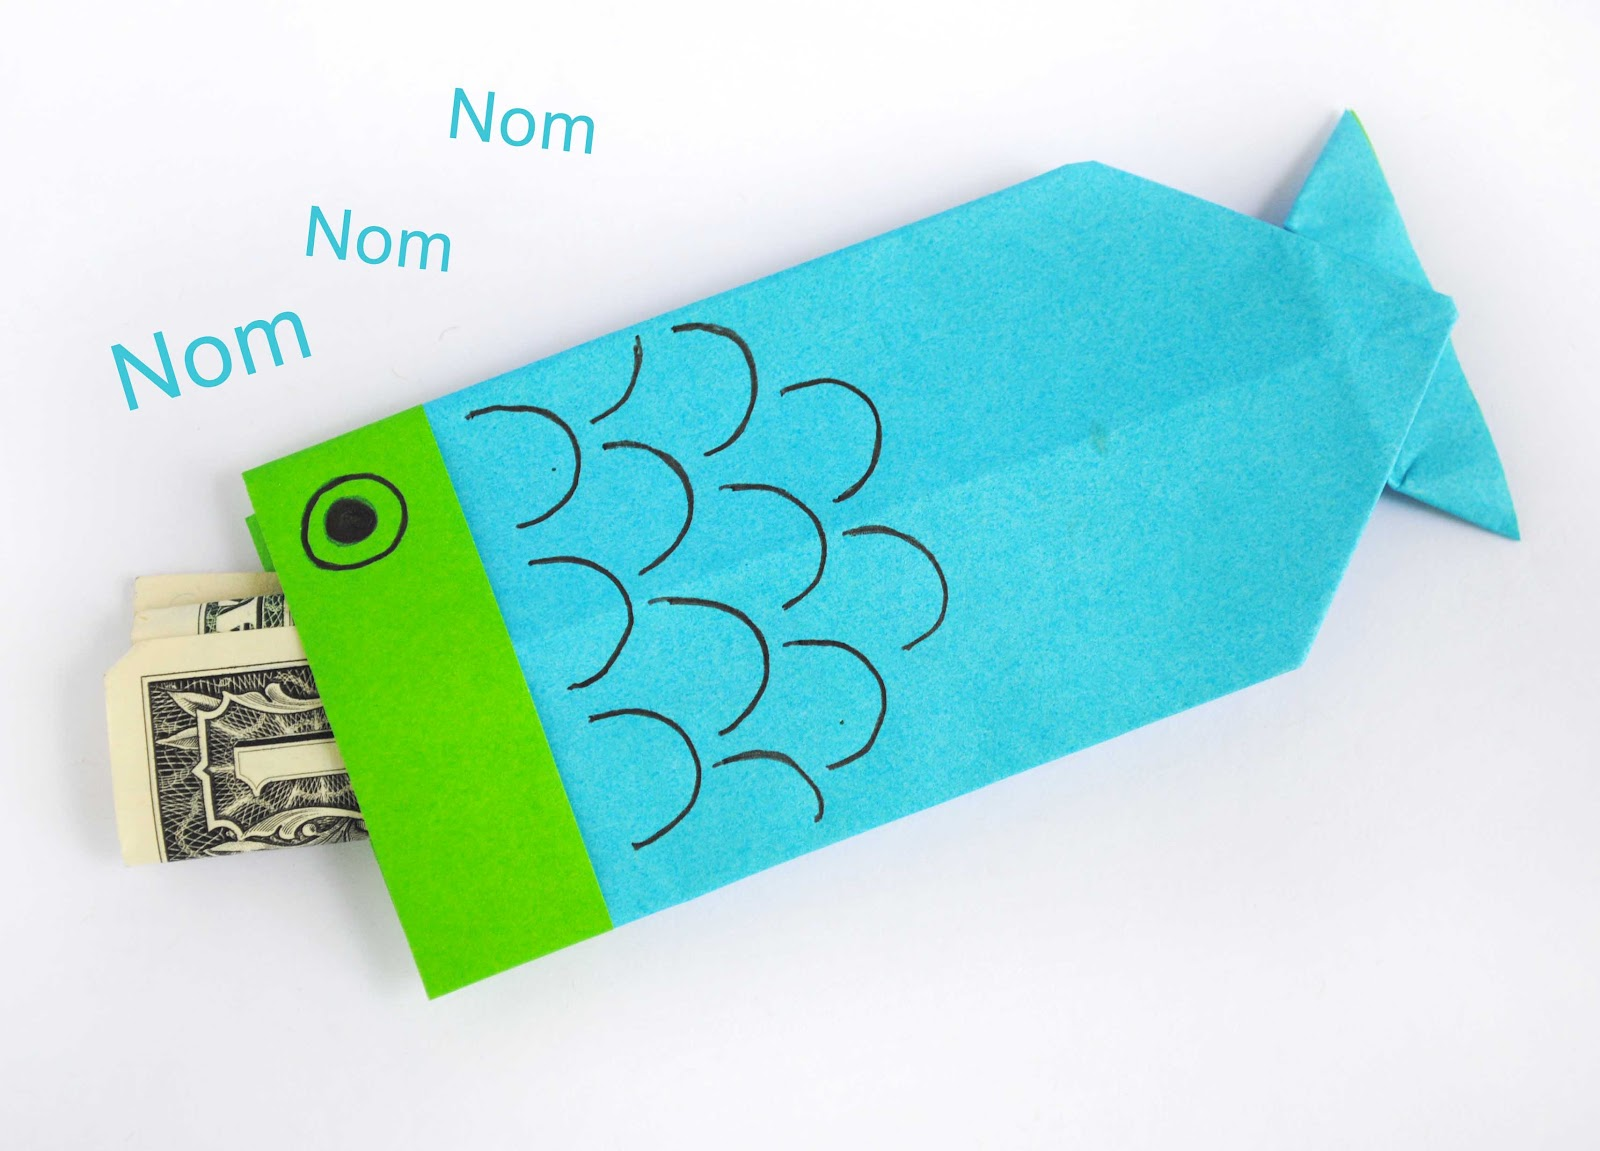 Not celebrating Boy39;s Day? Use this origami fish for a chopstick cover